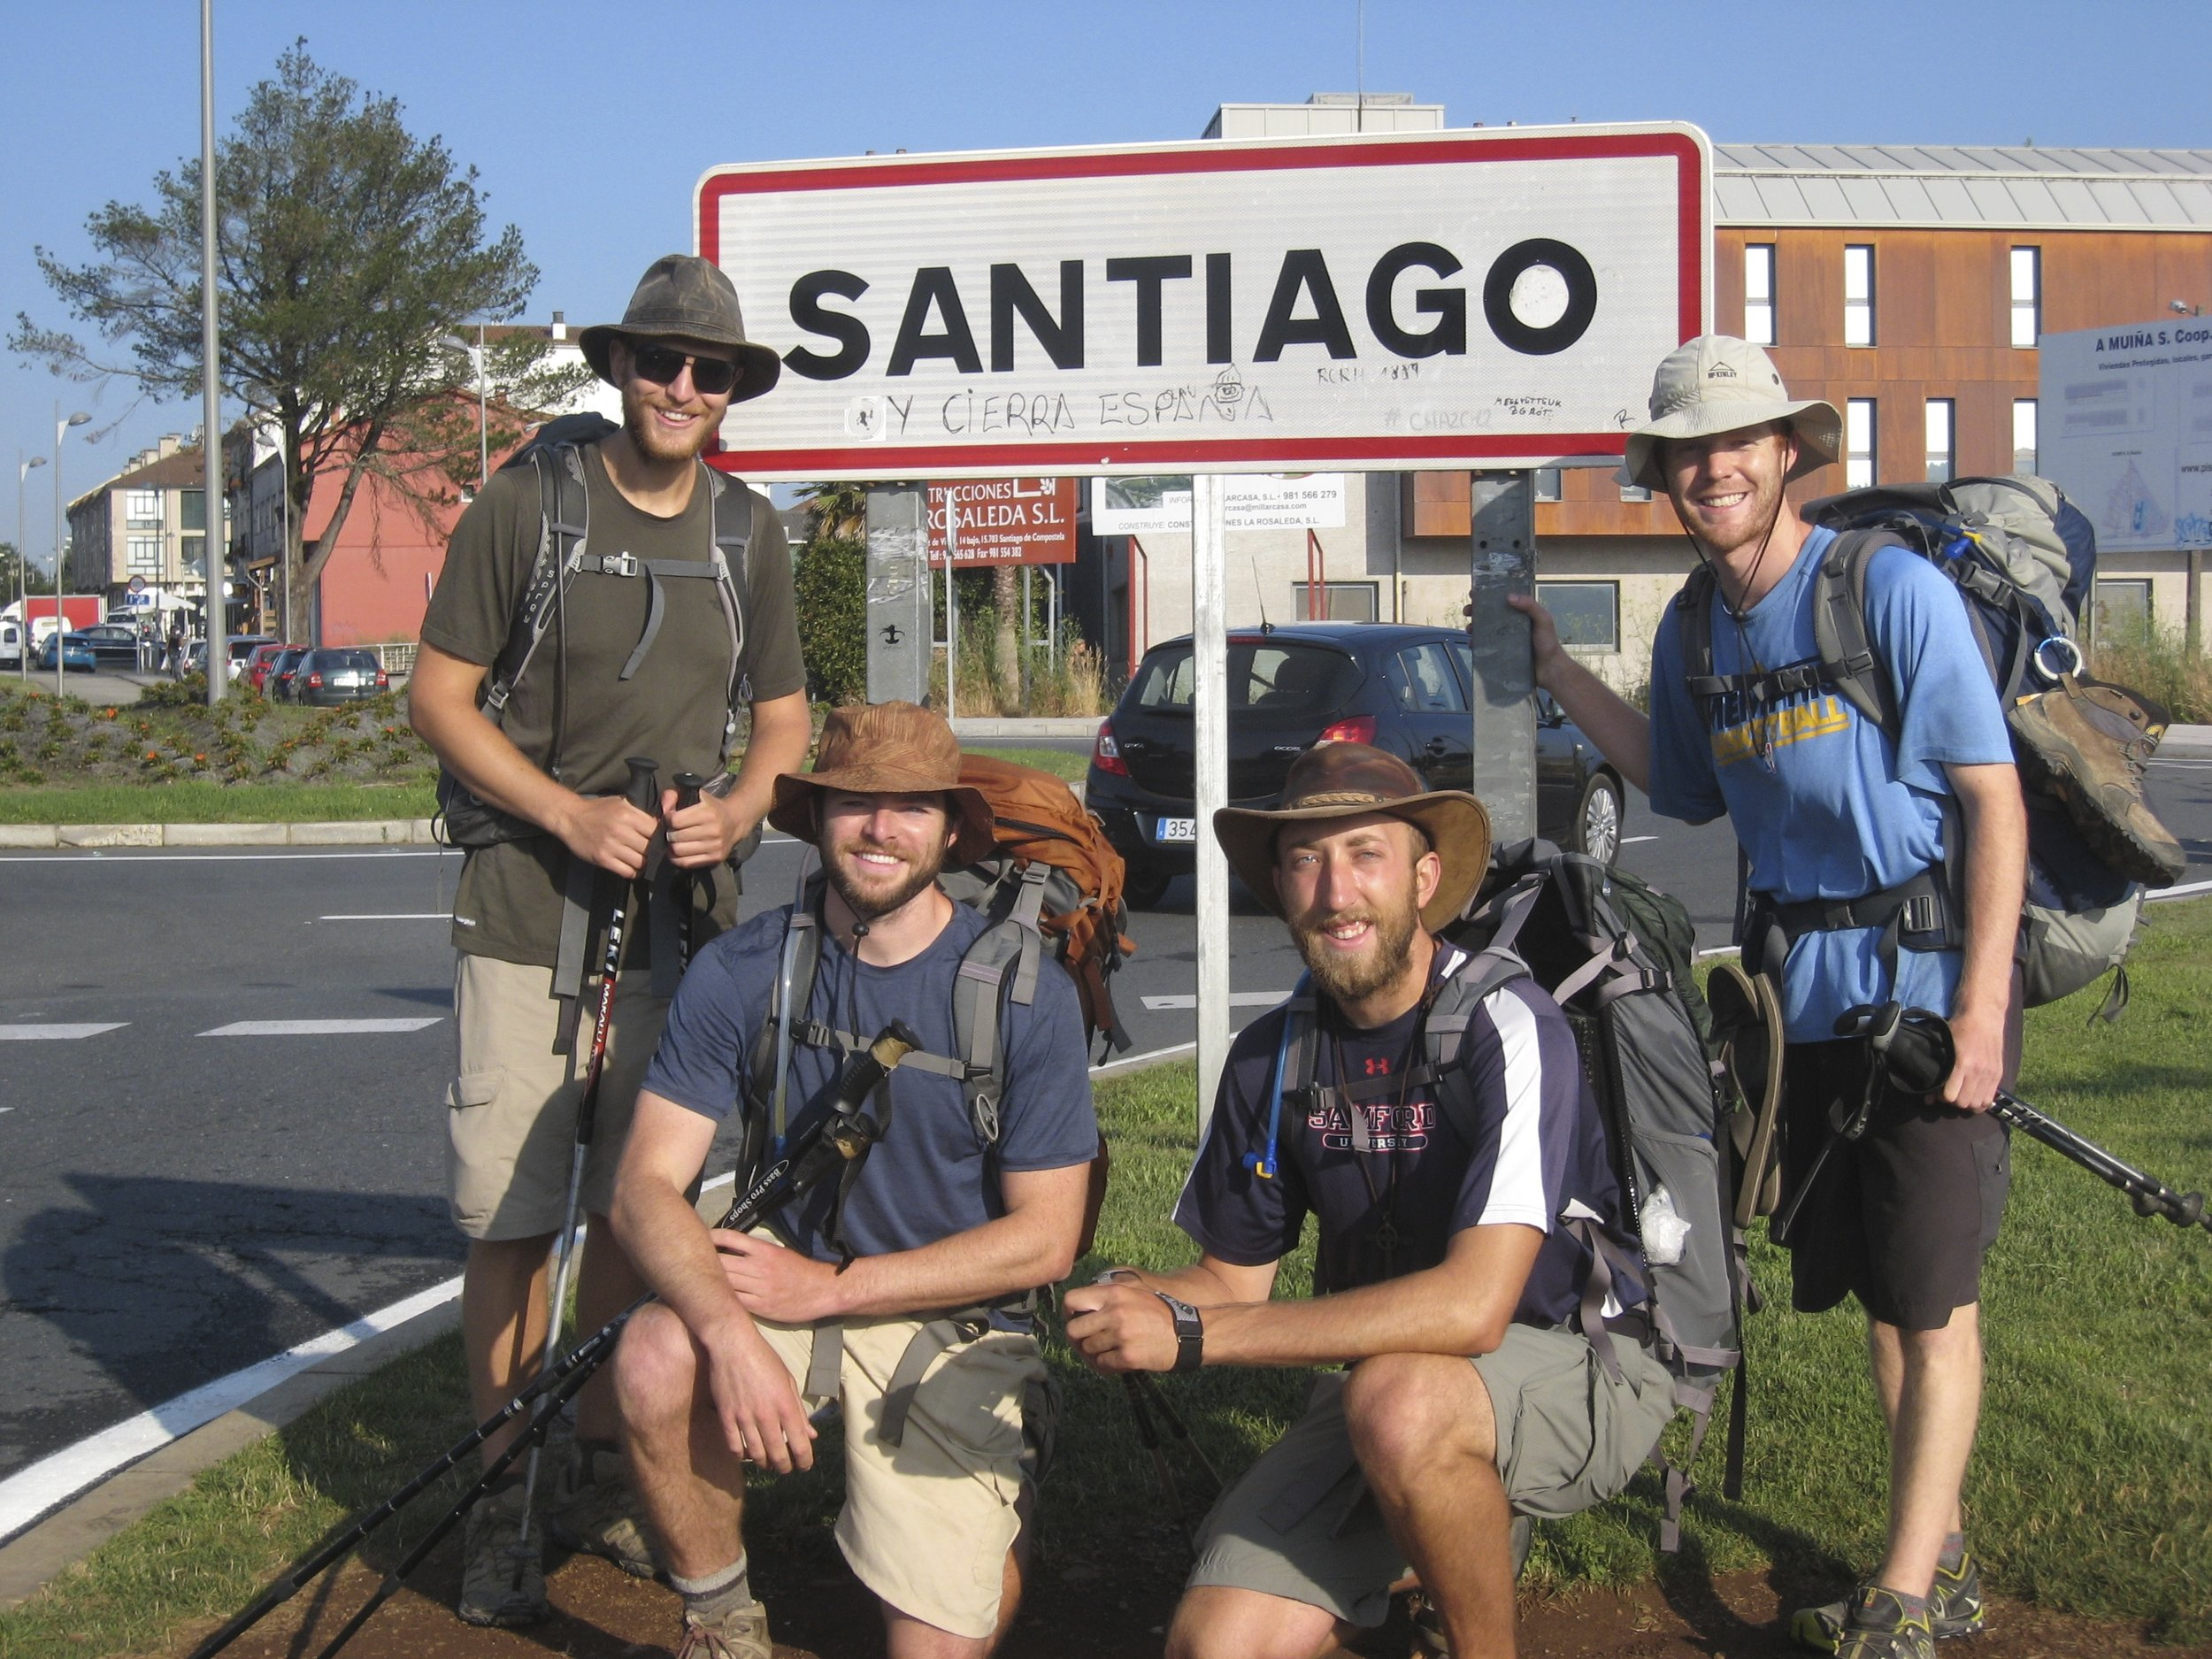 The shared experience of being on the Camino with friends can build a bond for a lifetime.